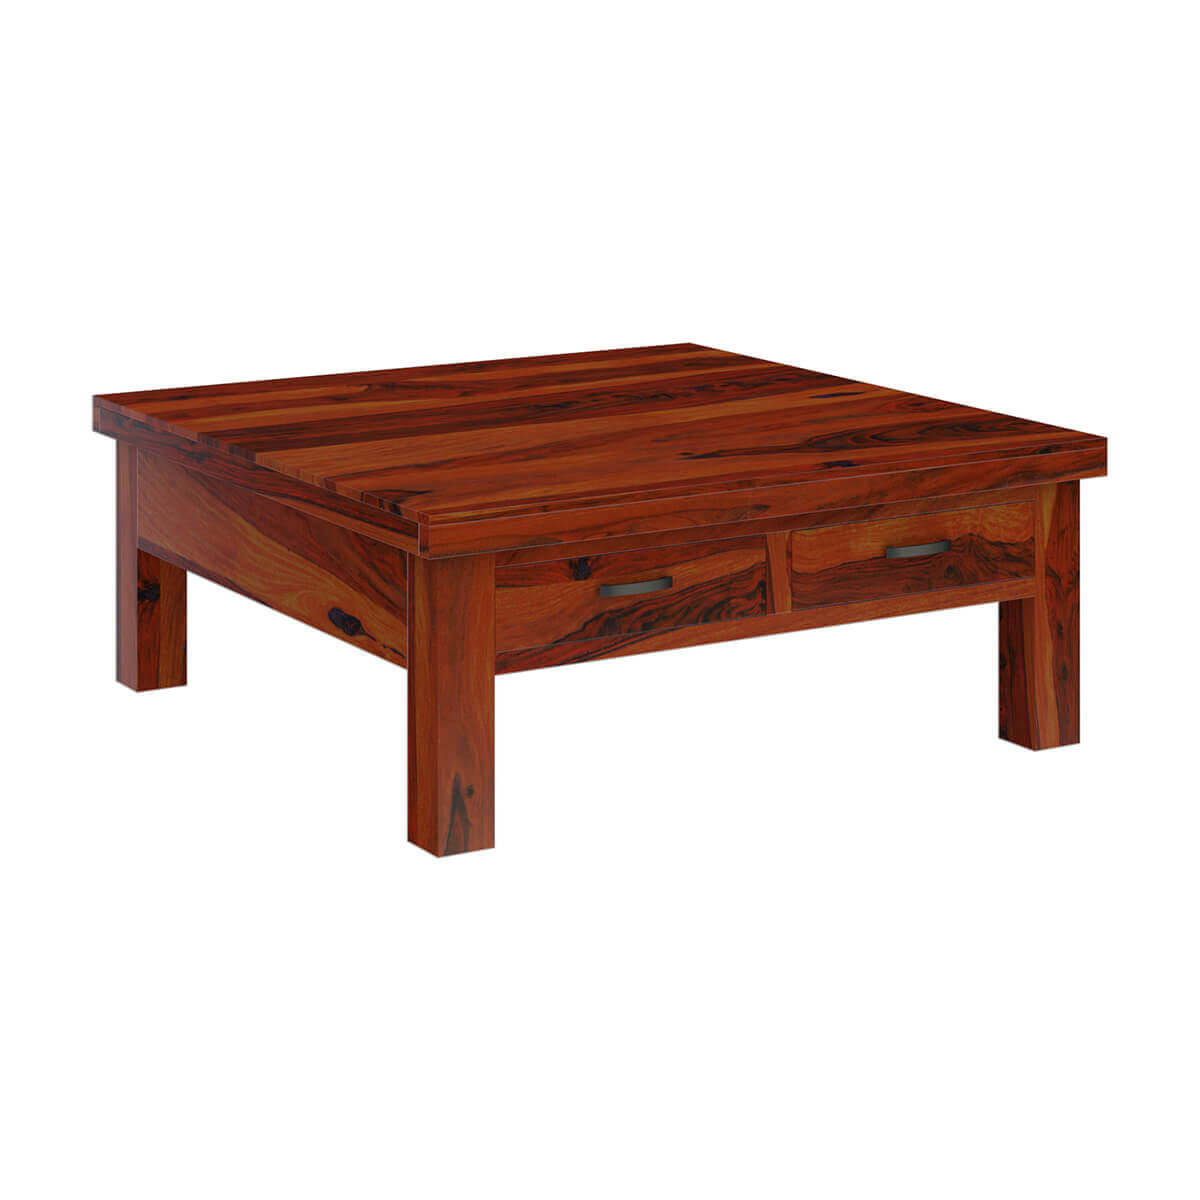 Classic solid wood 4 drawers square storage coffee table for Coffee tables with storage